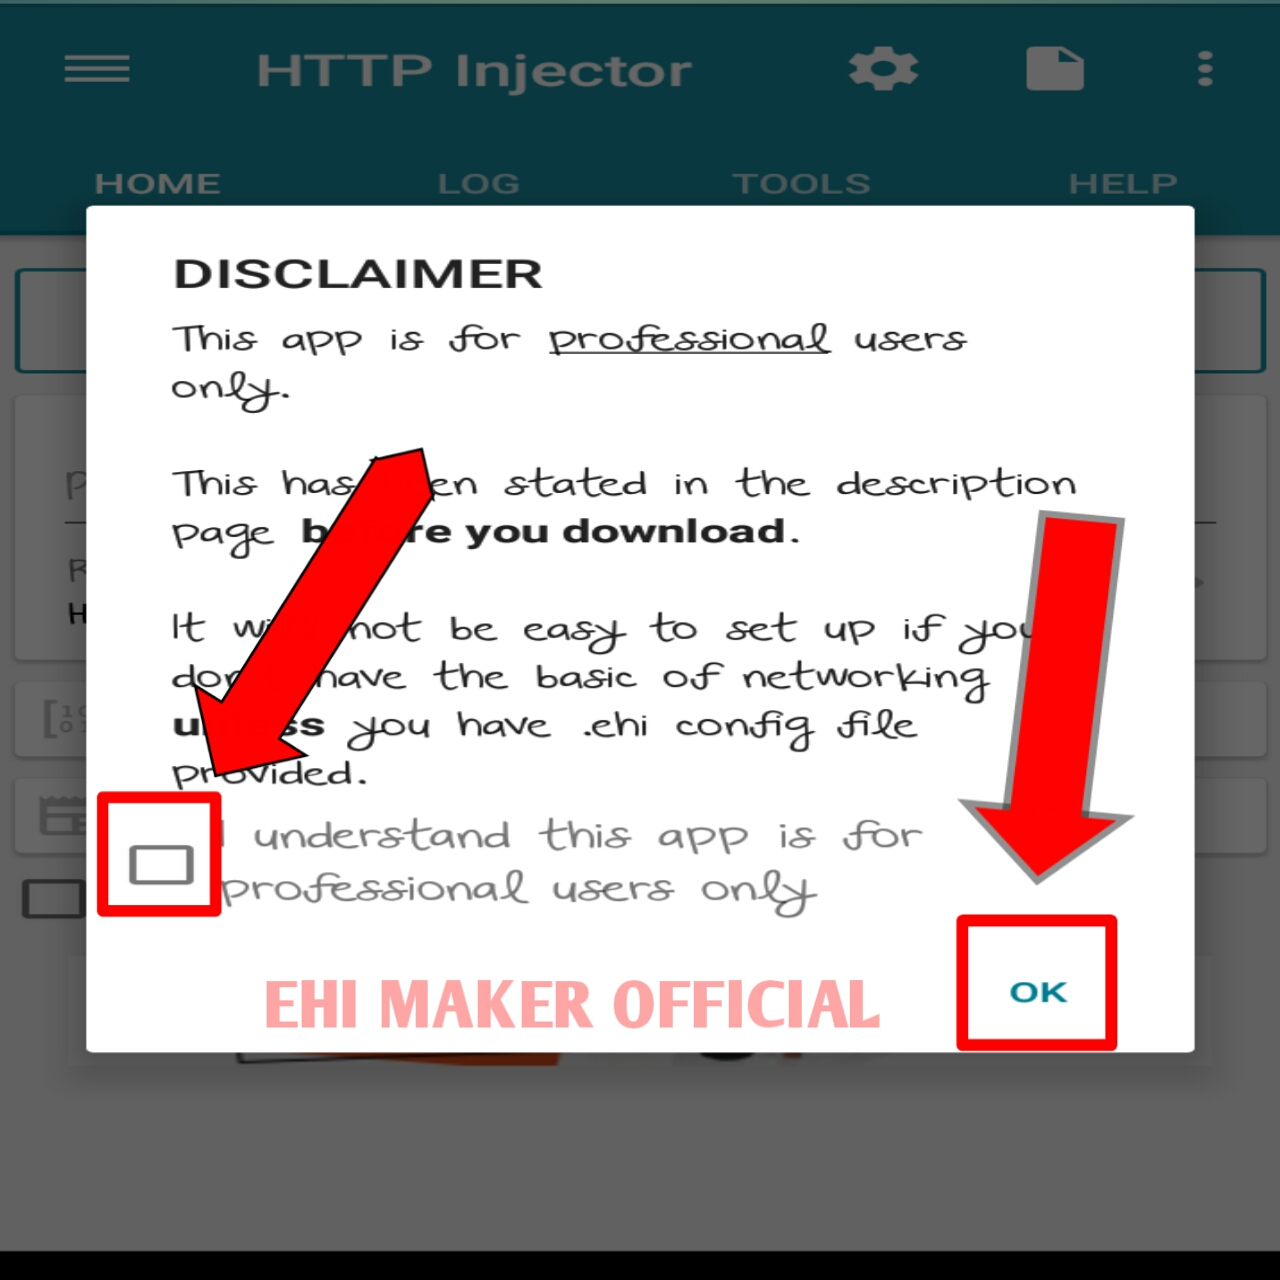 HOW TO USE HTTP INJECTOR TUTORIAL - EhiMakerOfficiaL